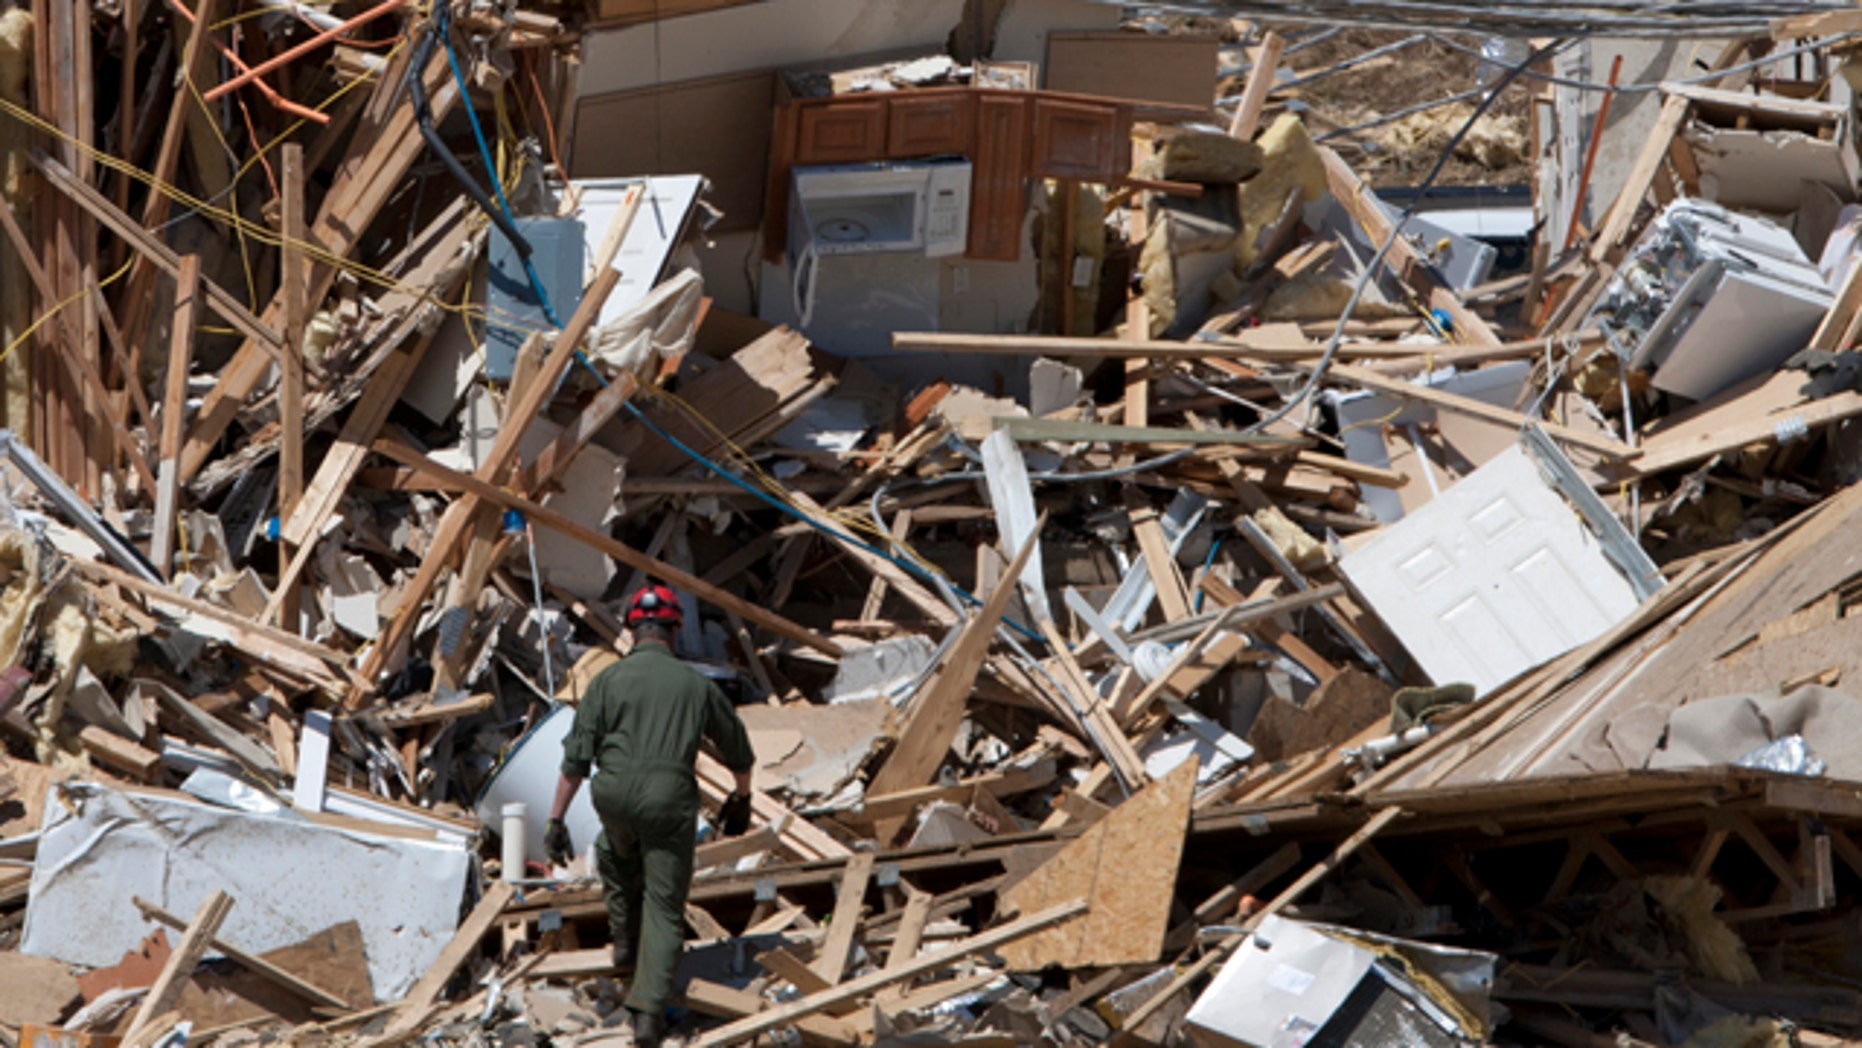 Researchers said nothing could have saved structures that were in the direct path of the tornado, which forecasters said was one of the strongest to hit the state during the severe weather outbreak that killed more than 240 people statewide on April 27.